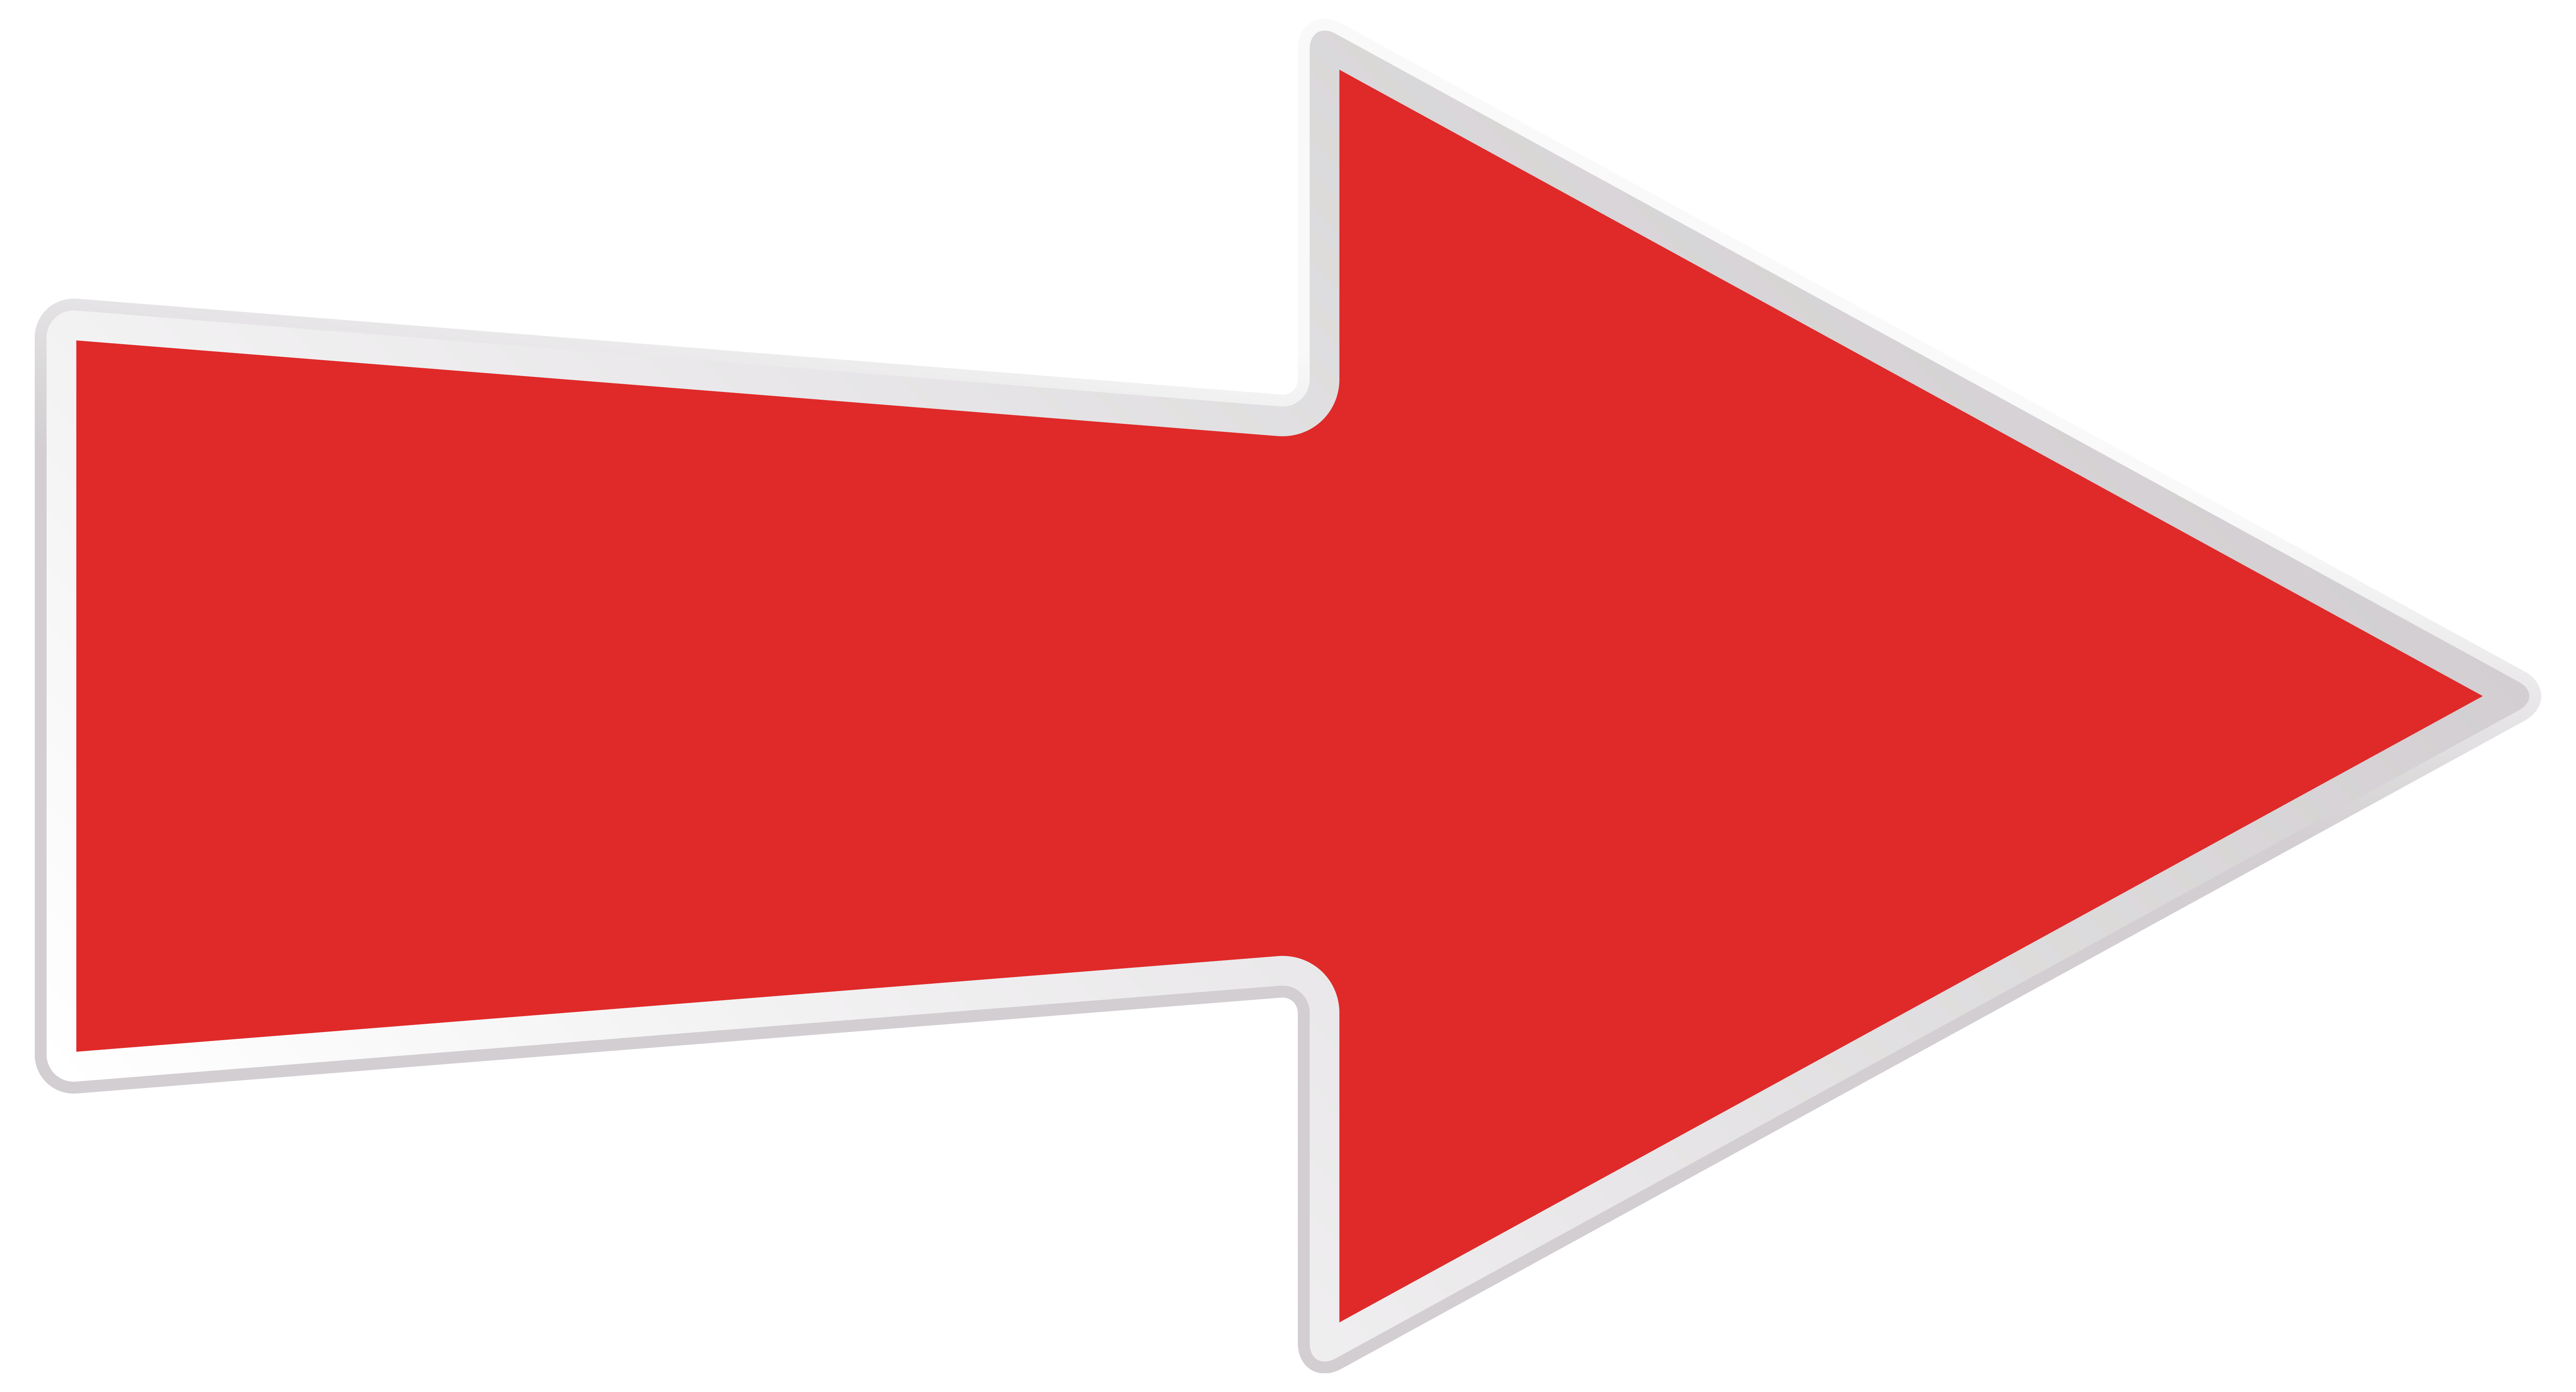 arrows clipart red